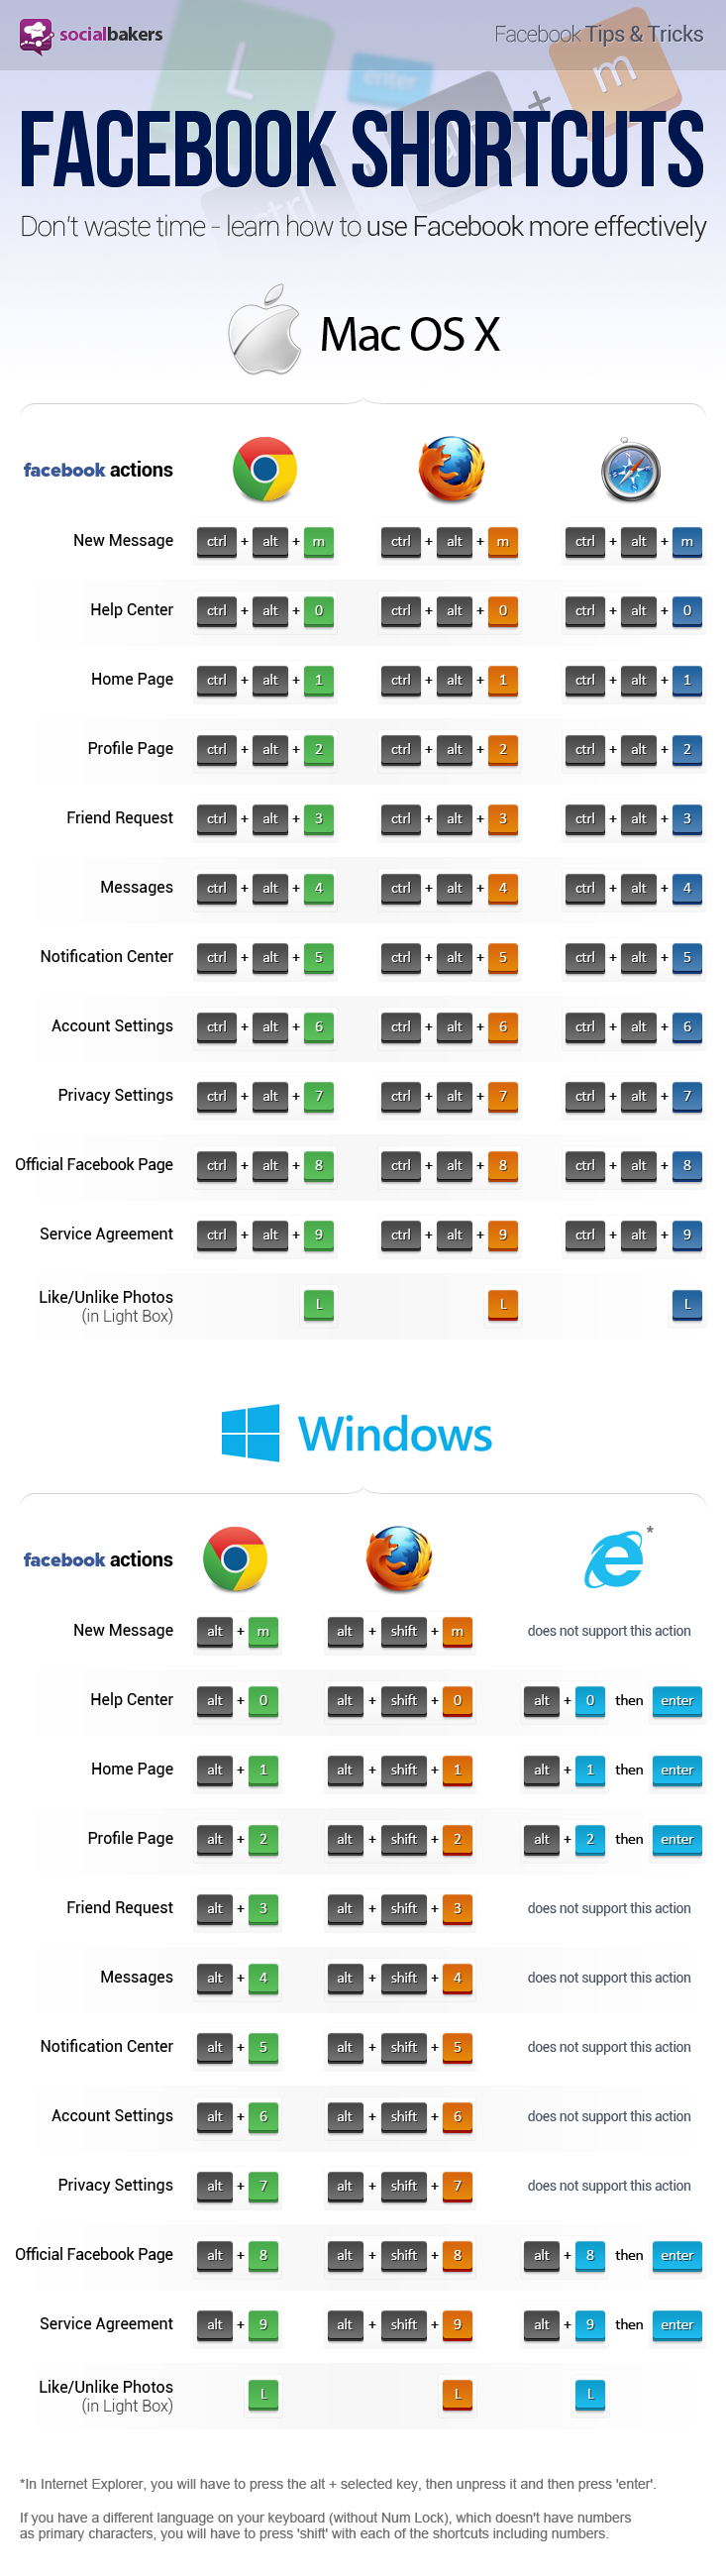 Infografik: Facebook Shortcuts sparen Zeit